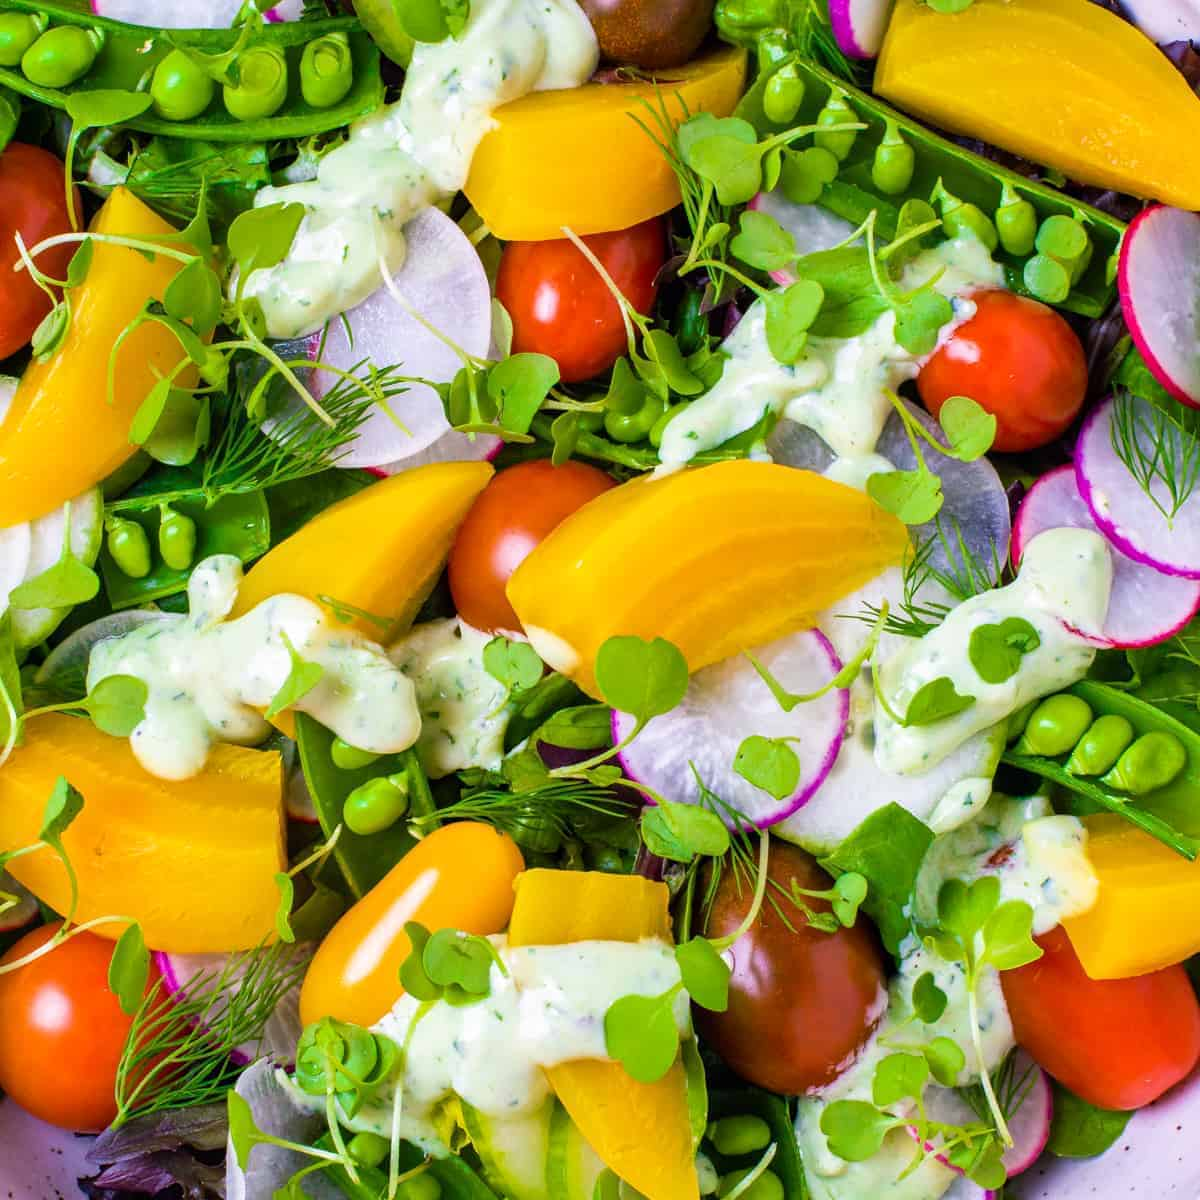 Close up picture of salad with roasted golden beets, radishes, heirloom tomatoes, sugar peas, and an avocado herb dressing.